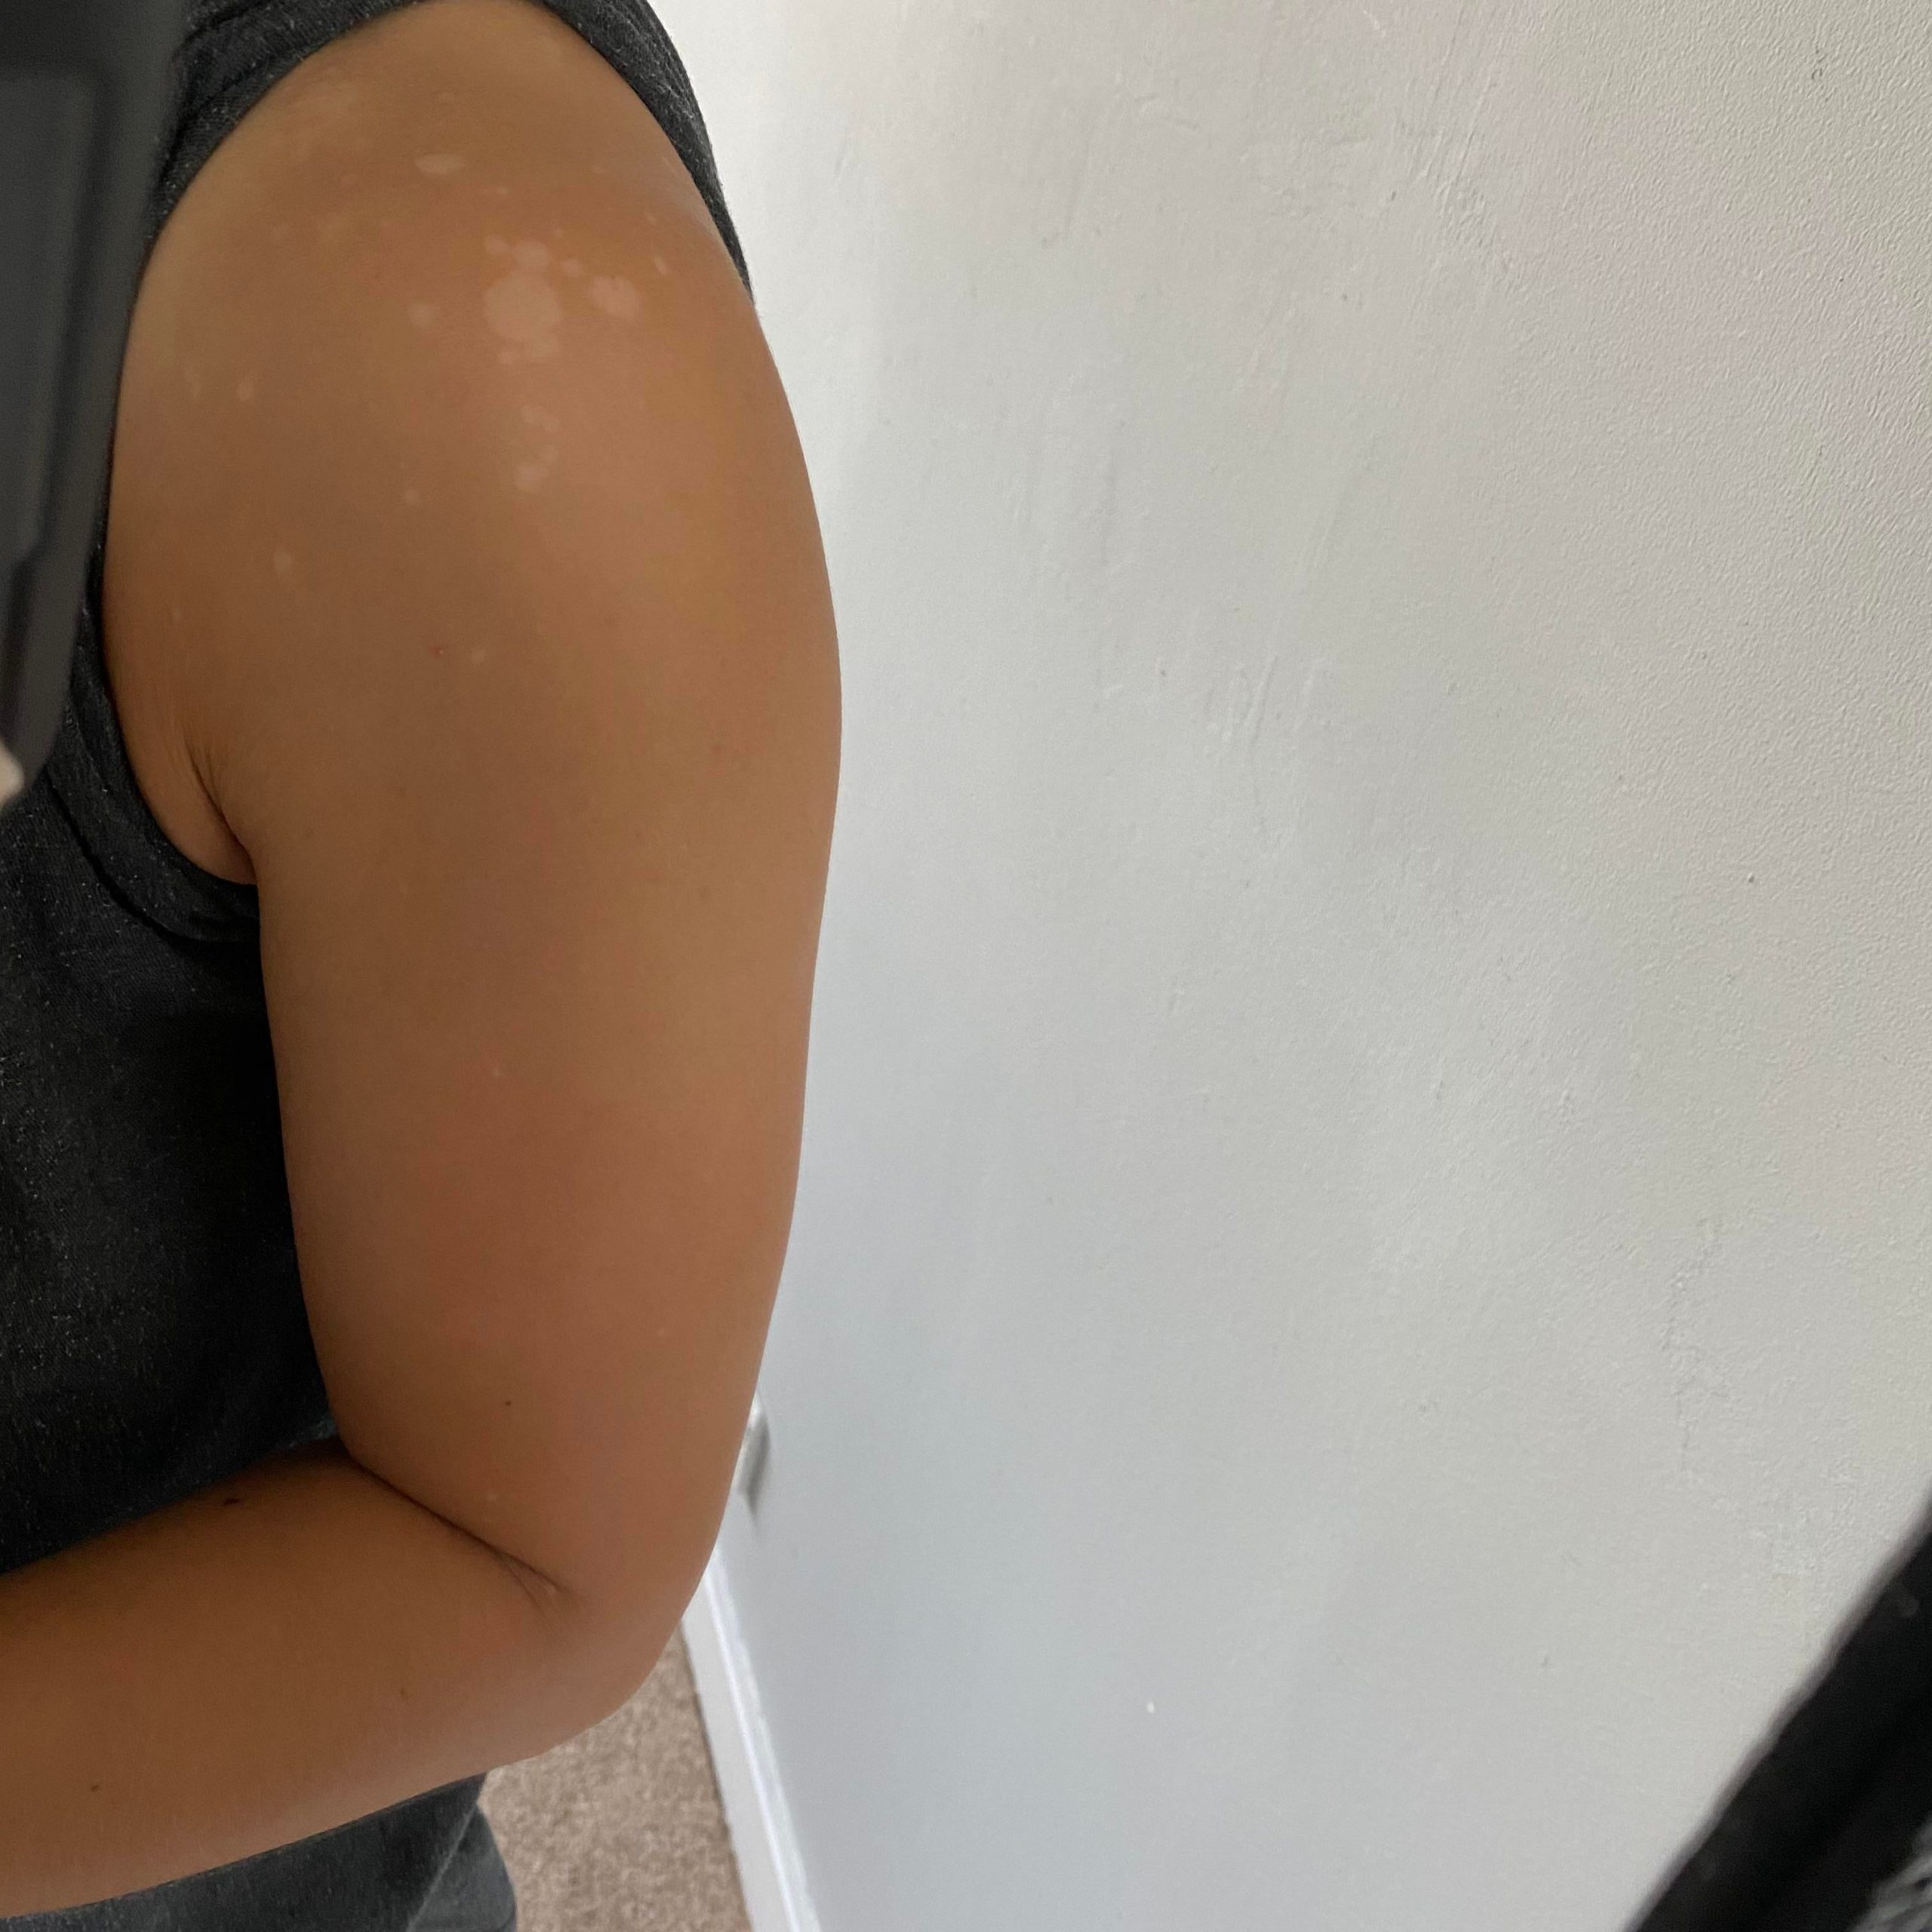 [skin concern] are these white marks caused by the sun? They are mainly on my shoulders and upper back. How to get rid of them?